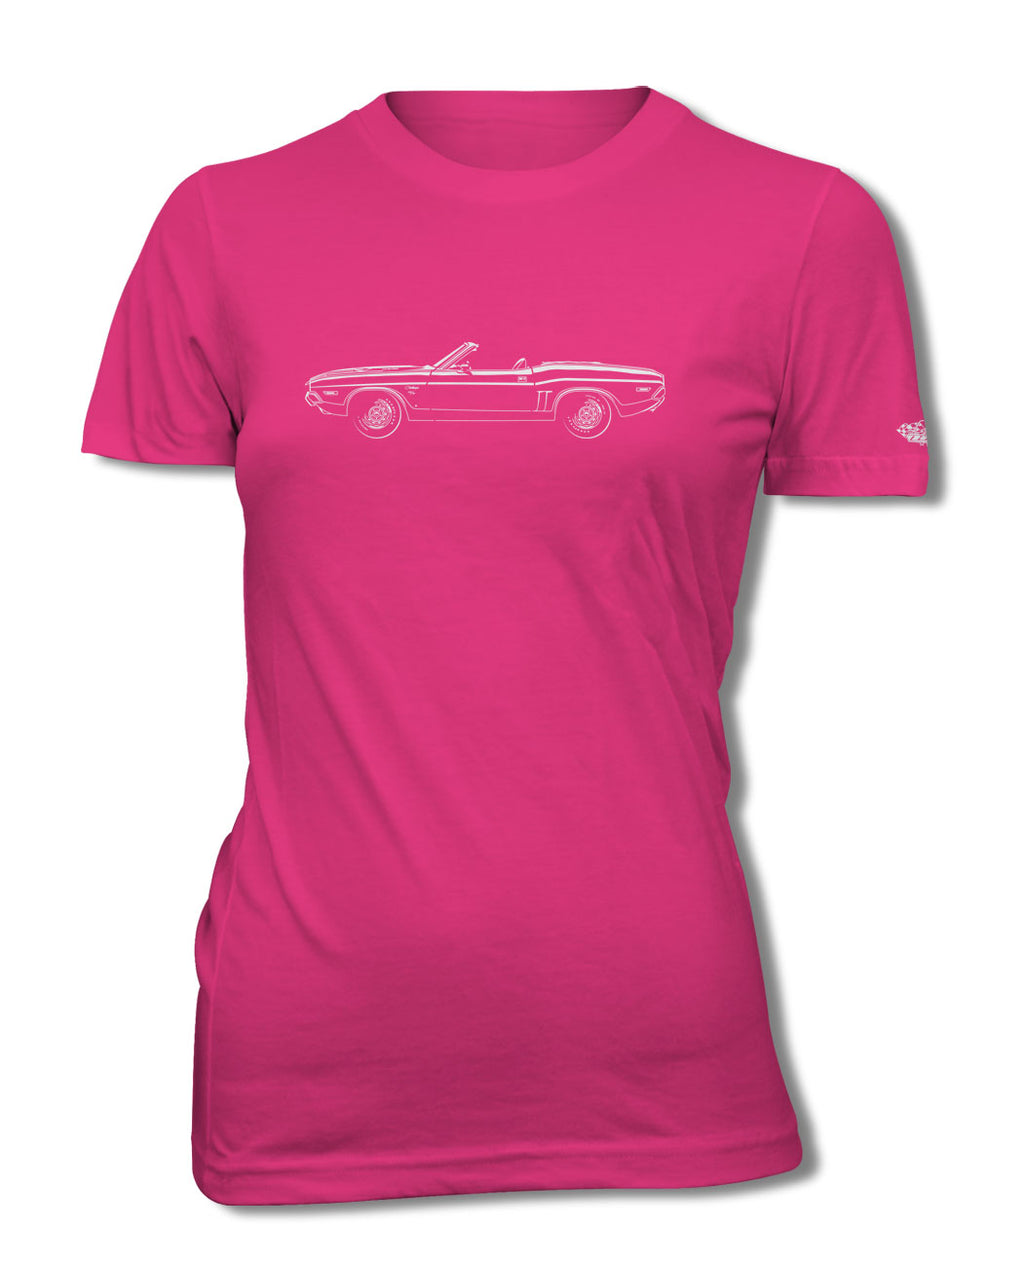 1971 Dodge Challenger RT Convertible Bulge Hood T-Shirt - Women - Side View